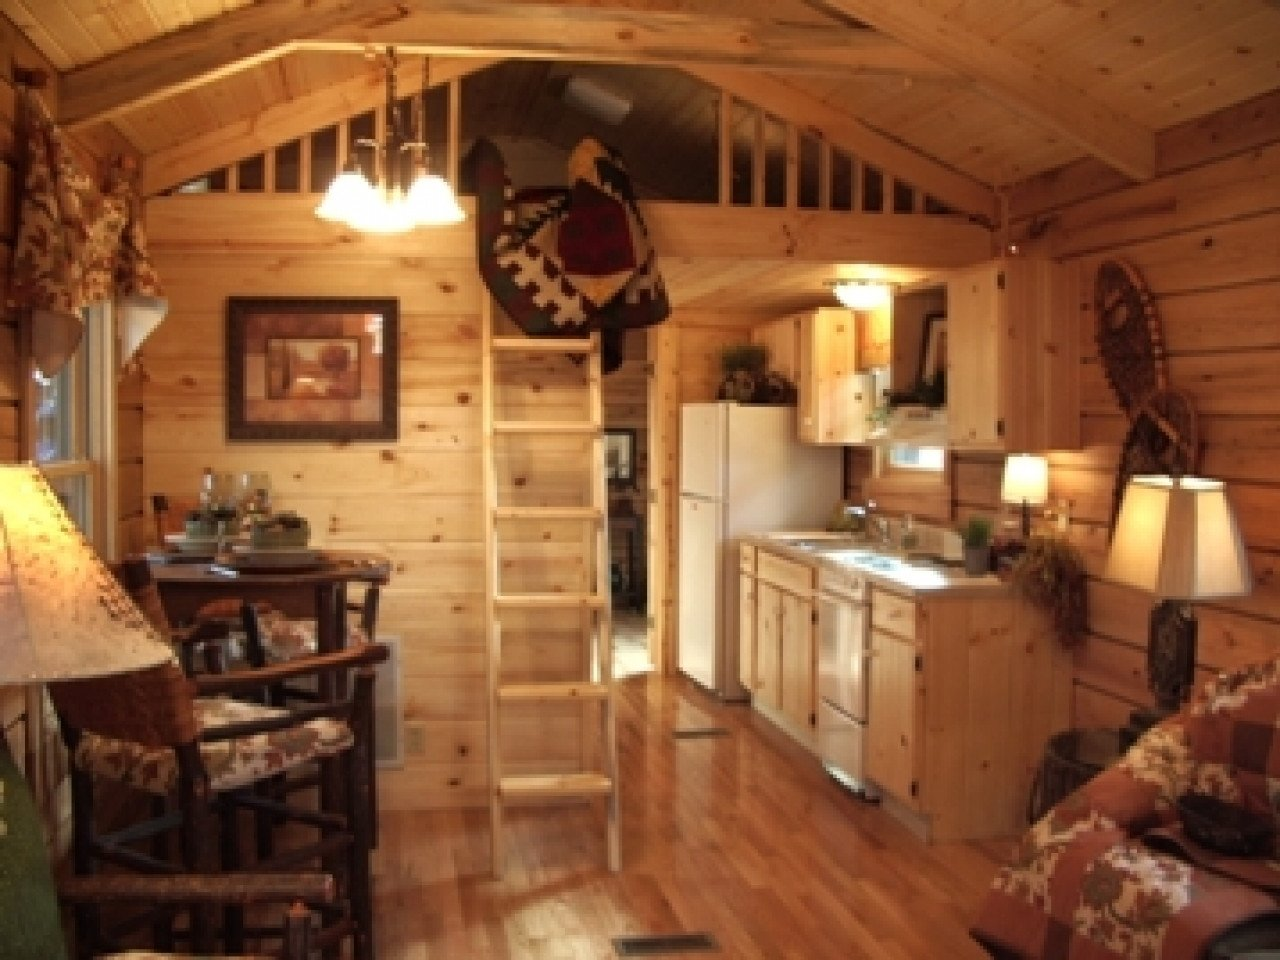 10 Beautiful Small Cabin Interior Design Ideas 10 unique picture small cabin interior design ideas new ideas 1